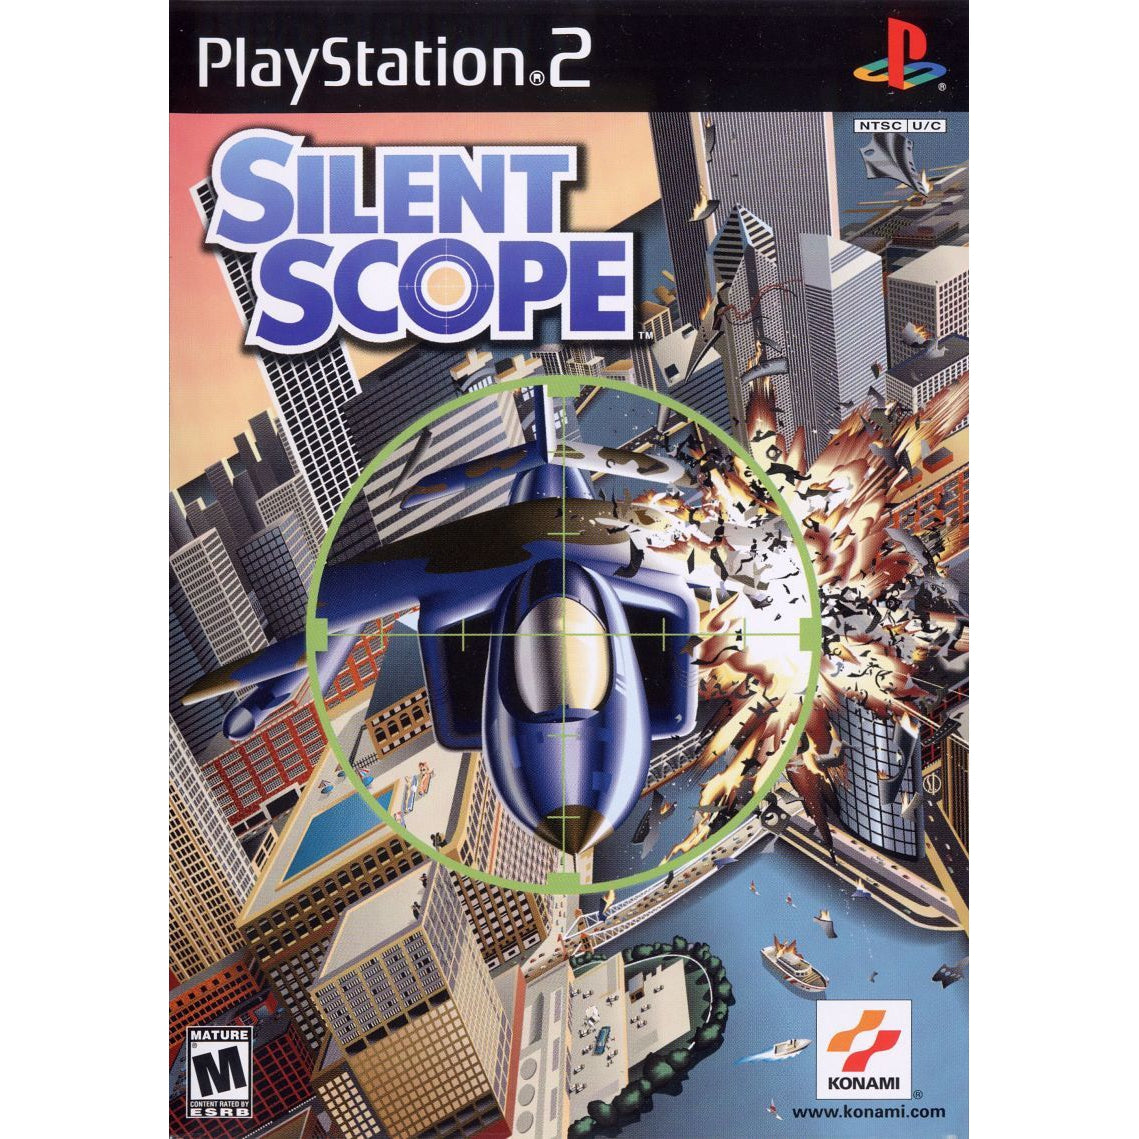 Silent Scope - PlayStation 2 (PS2) Game Complete - YourGamingShop.com - Buy, Sell, Trade Video Games Online. 120 Day Warranty. Satisfaction Guaranteed.